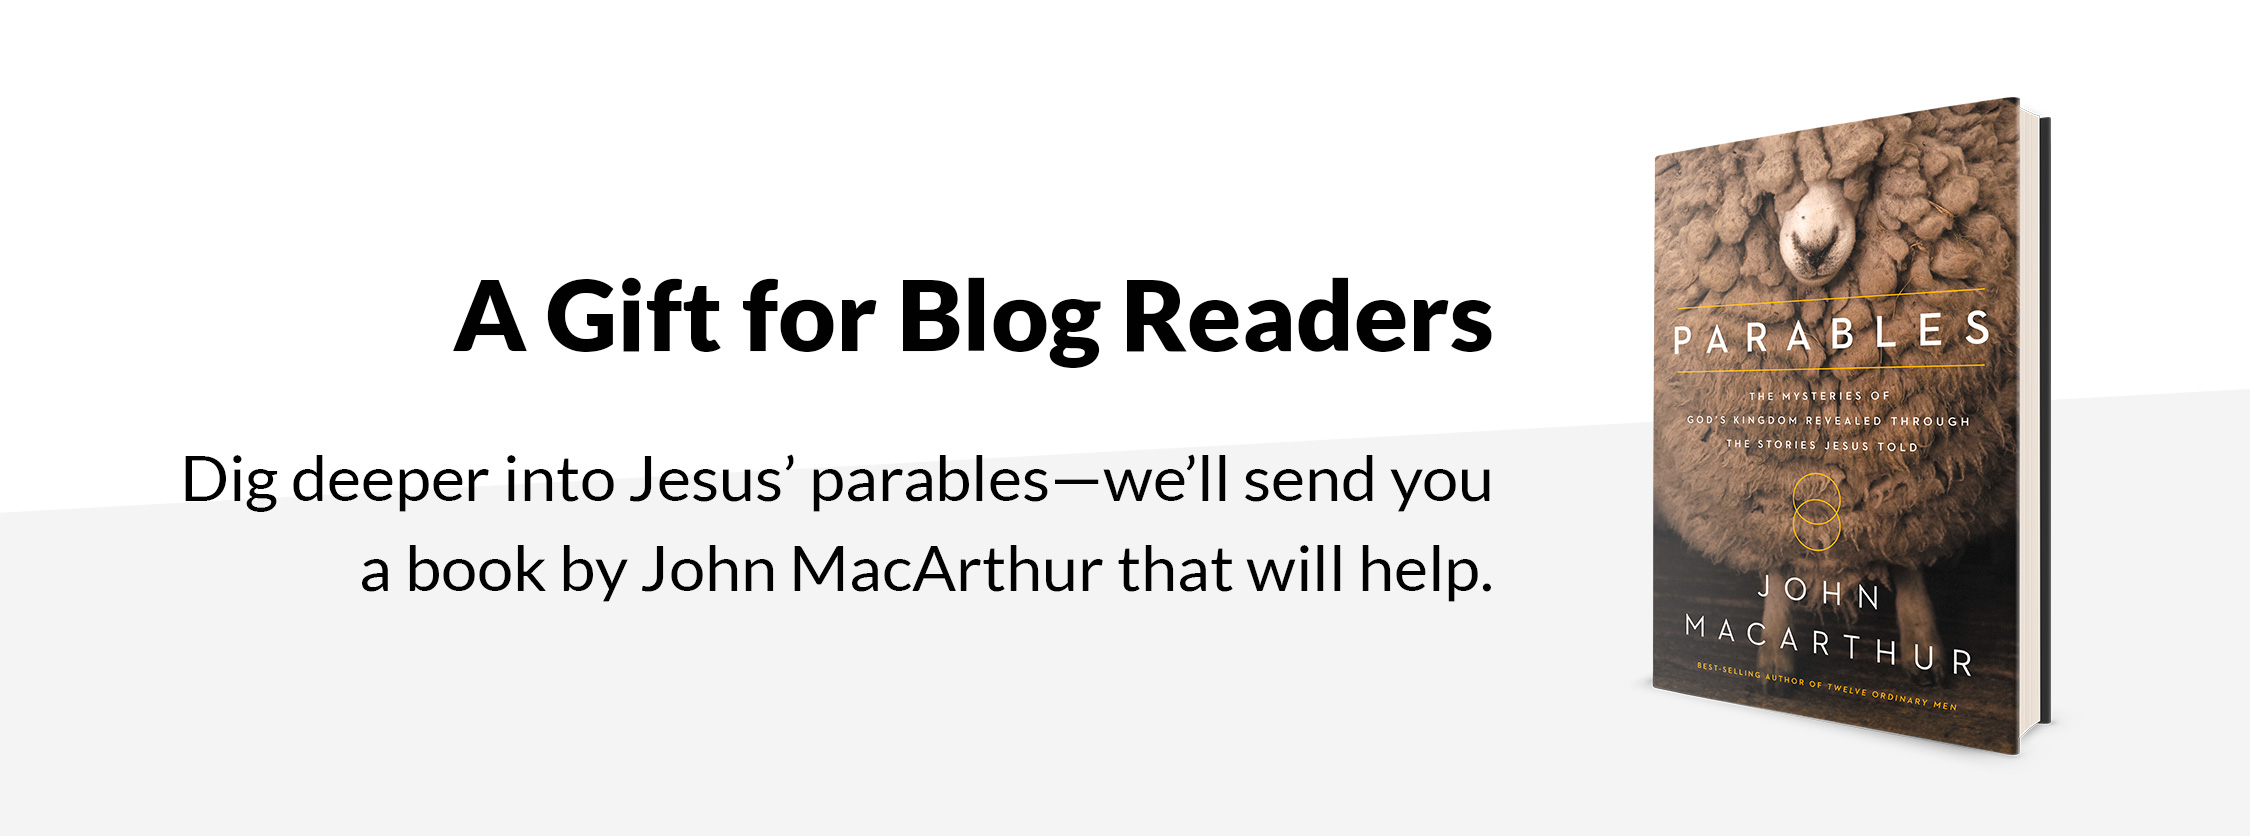 A Gift for Blog Readers. Dig deeper into Jesus' parables—we'll send you a book by John MacArthur that will help.